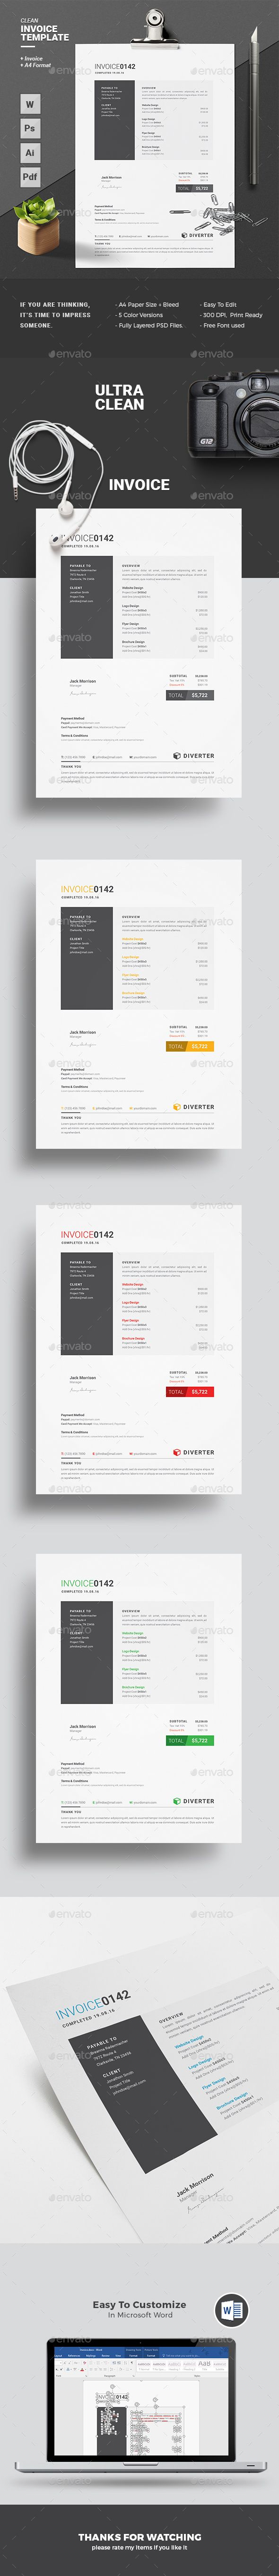 Proposal Template Microsoft Word Invoice  Proposals Template And Brand Identity